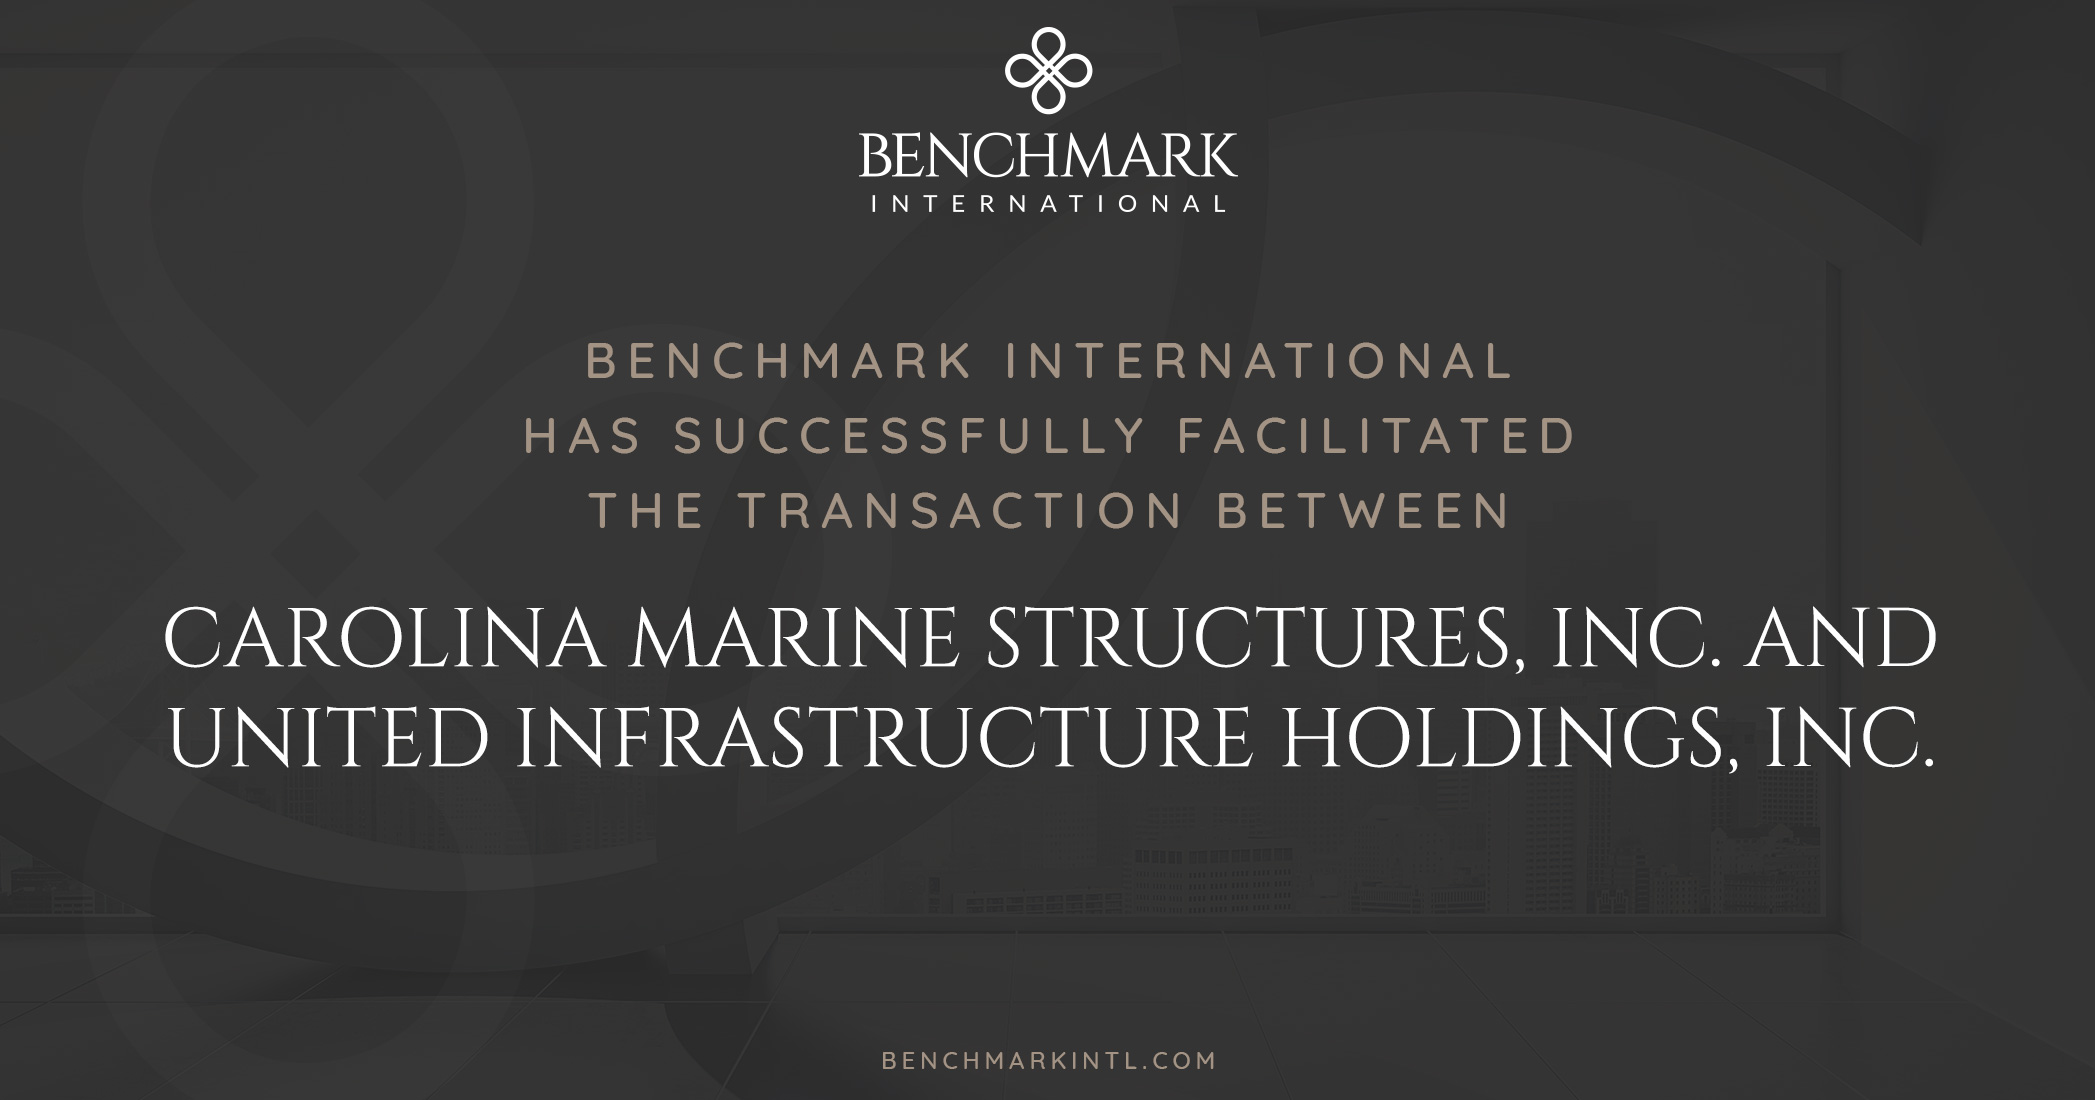 Benchmark International Successfully Facilitated the Transaction Between Carolina Marine Structures, Inc. and United Infrastructure Holdings, Inc.